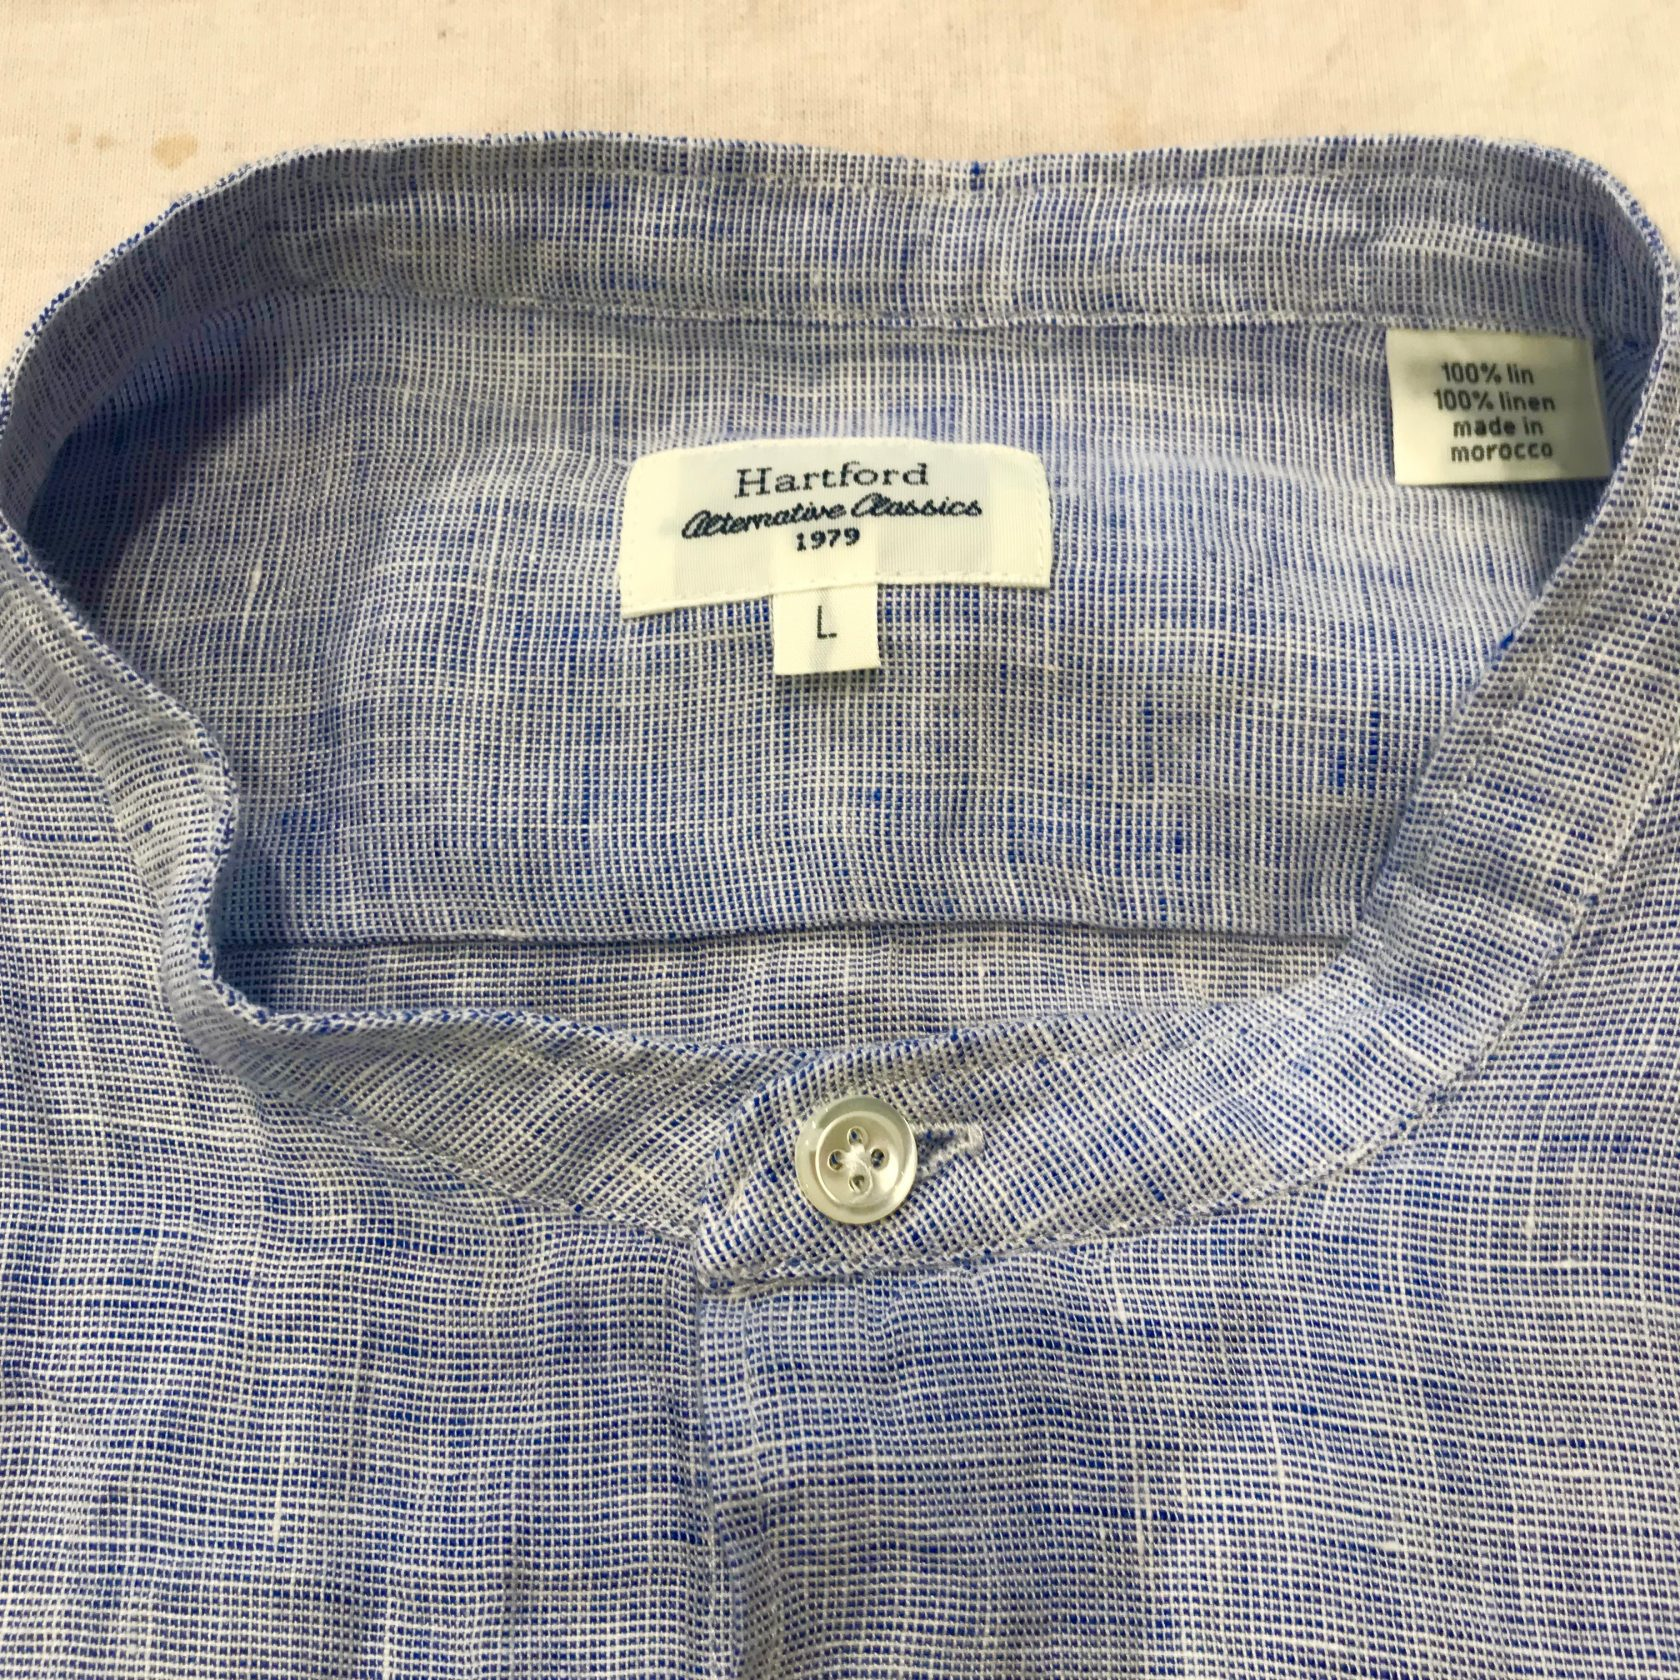 Hartford linen stand collar shirt